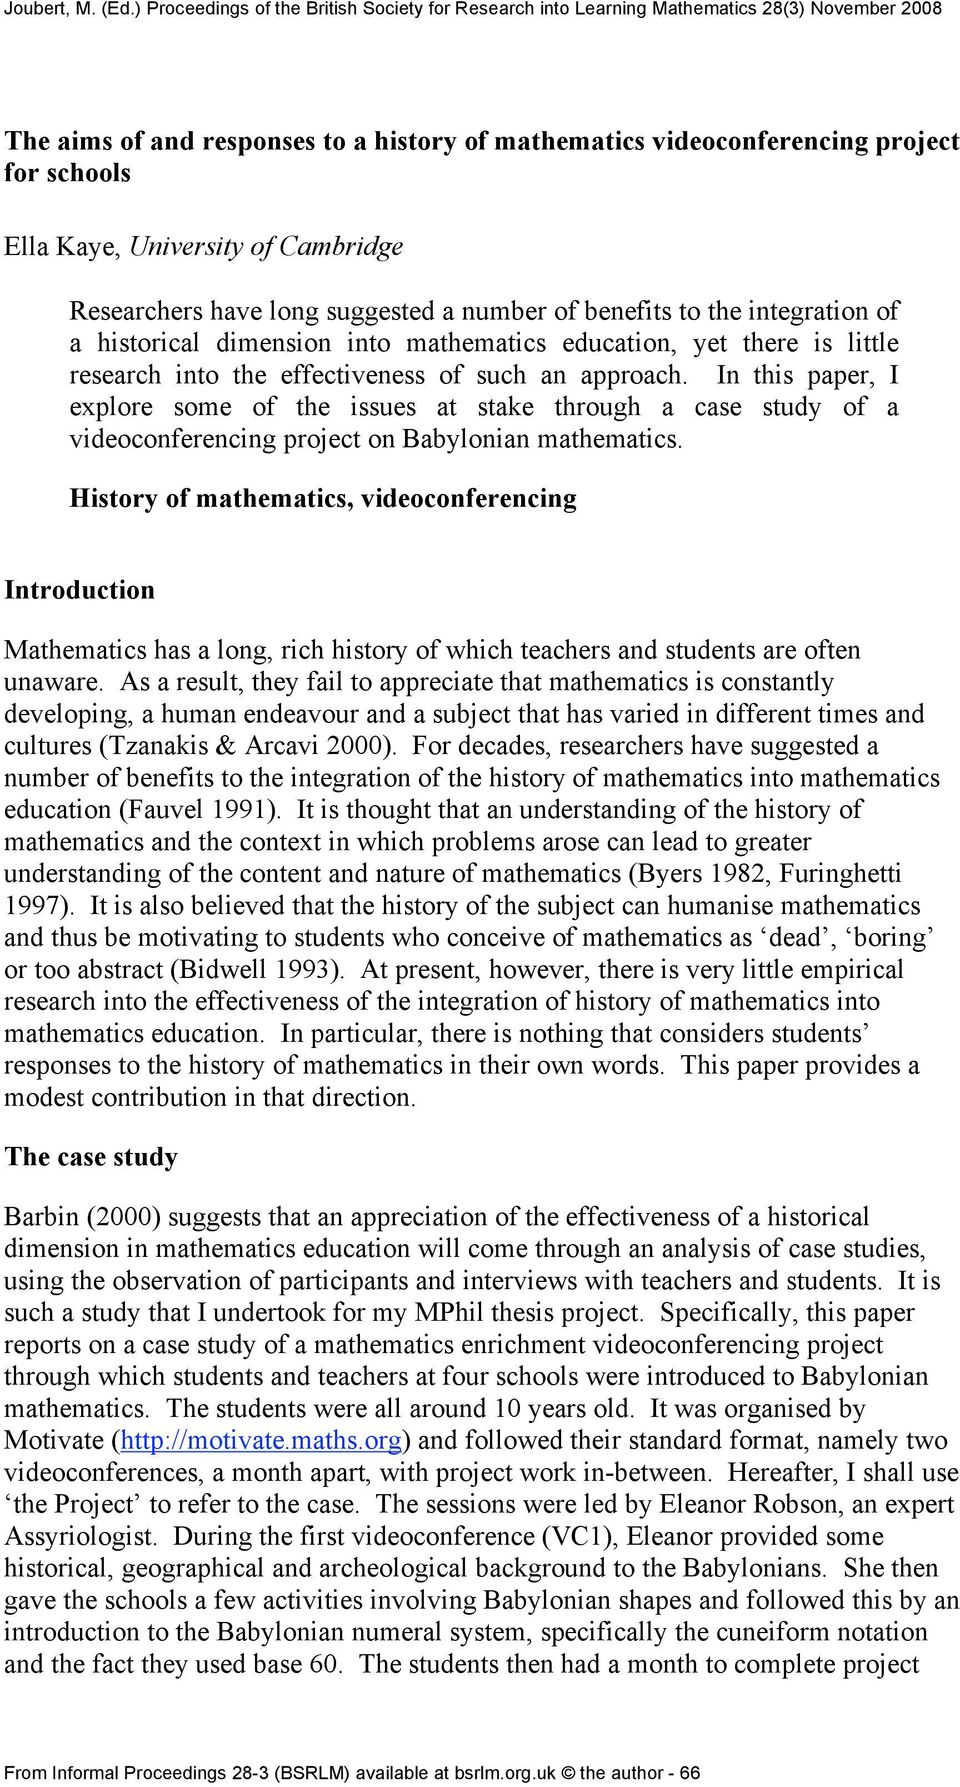 In this paper, I explore some of the issues at stake through a case study of a videoconferencing project on Babylonian mathematics.